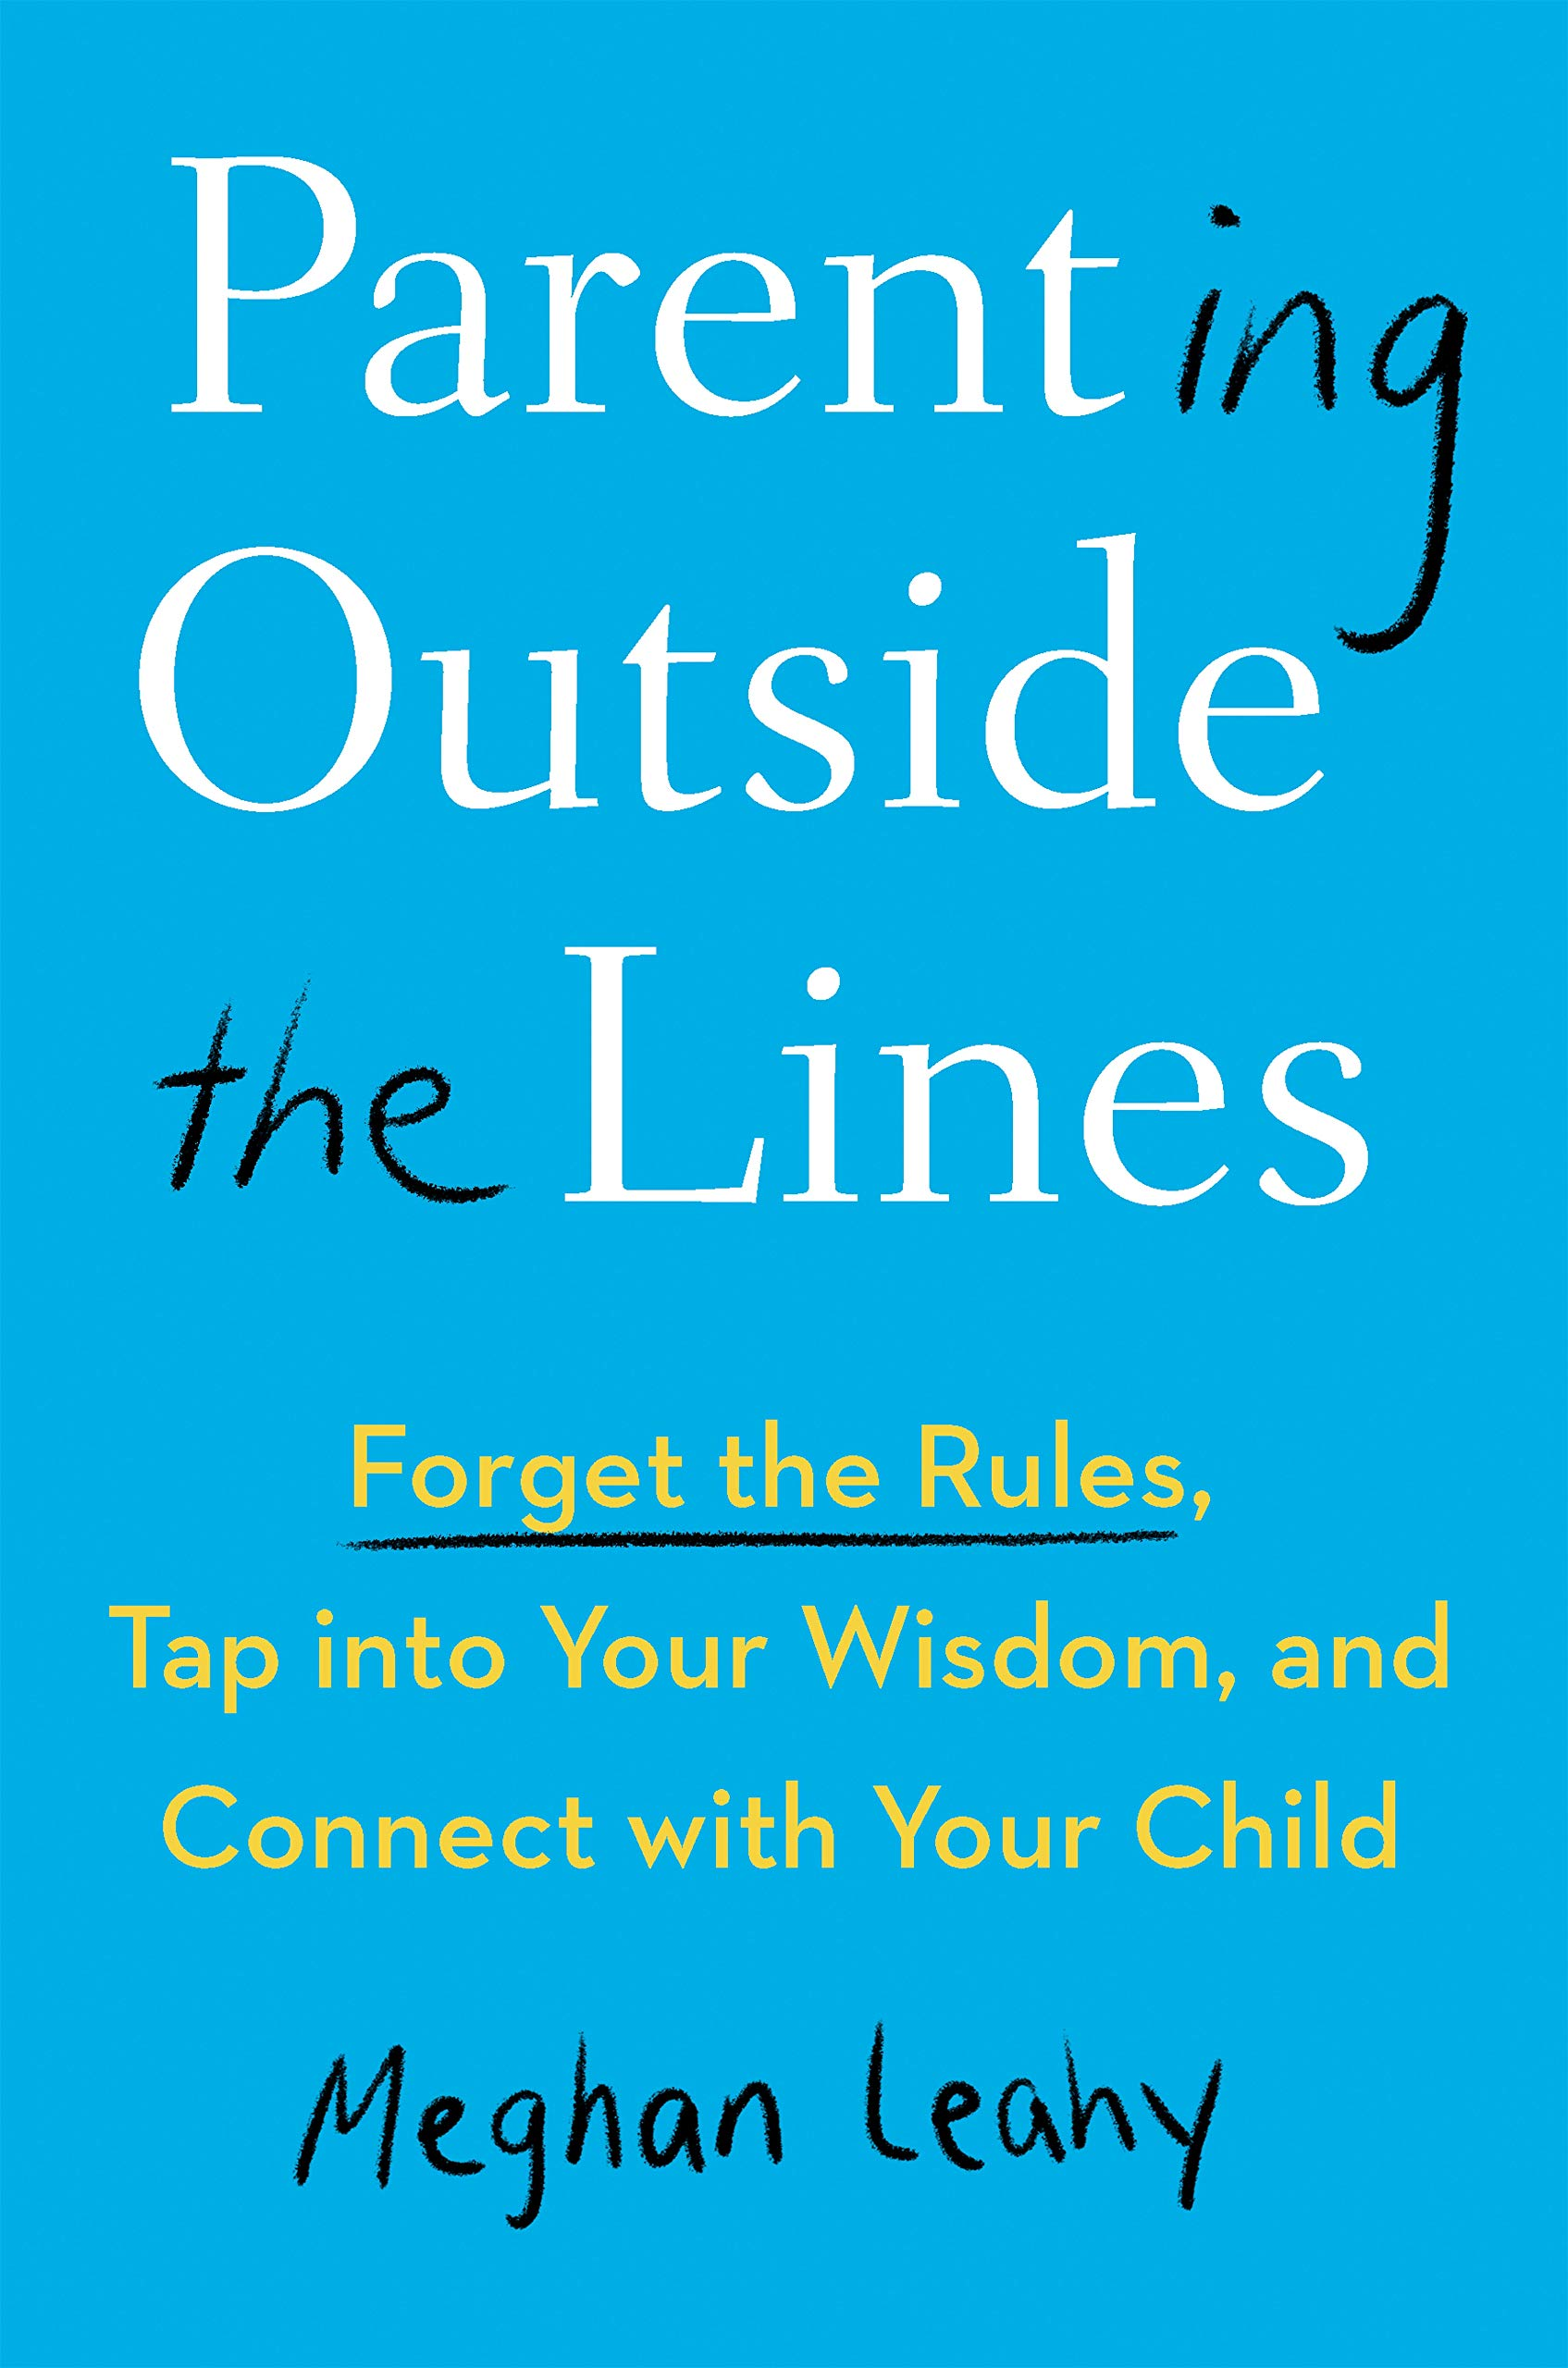 Image OfParenting Outside The Lines: Forget The Rules, Tap Into Your Wisdom, And Connect With Your Child